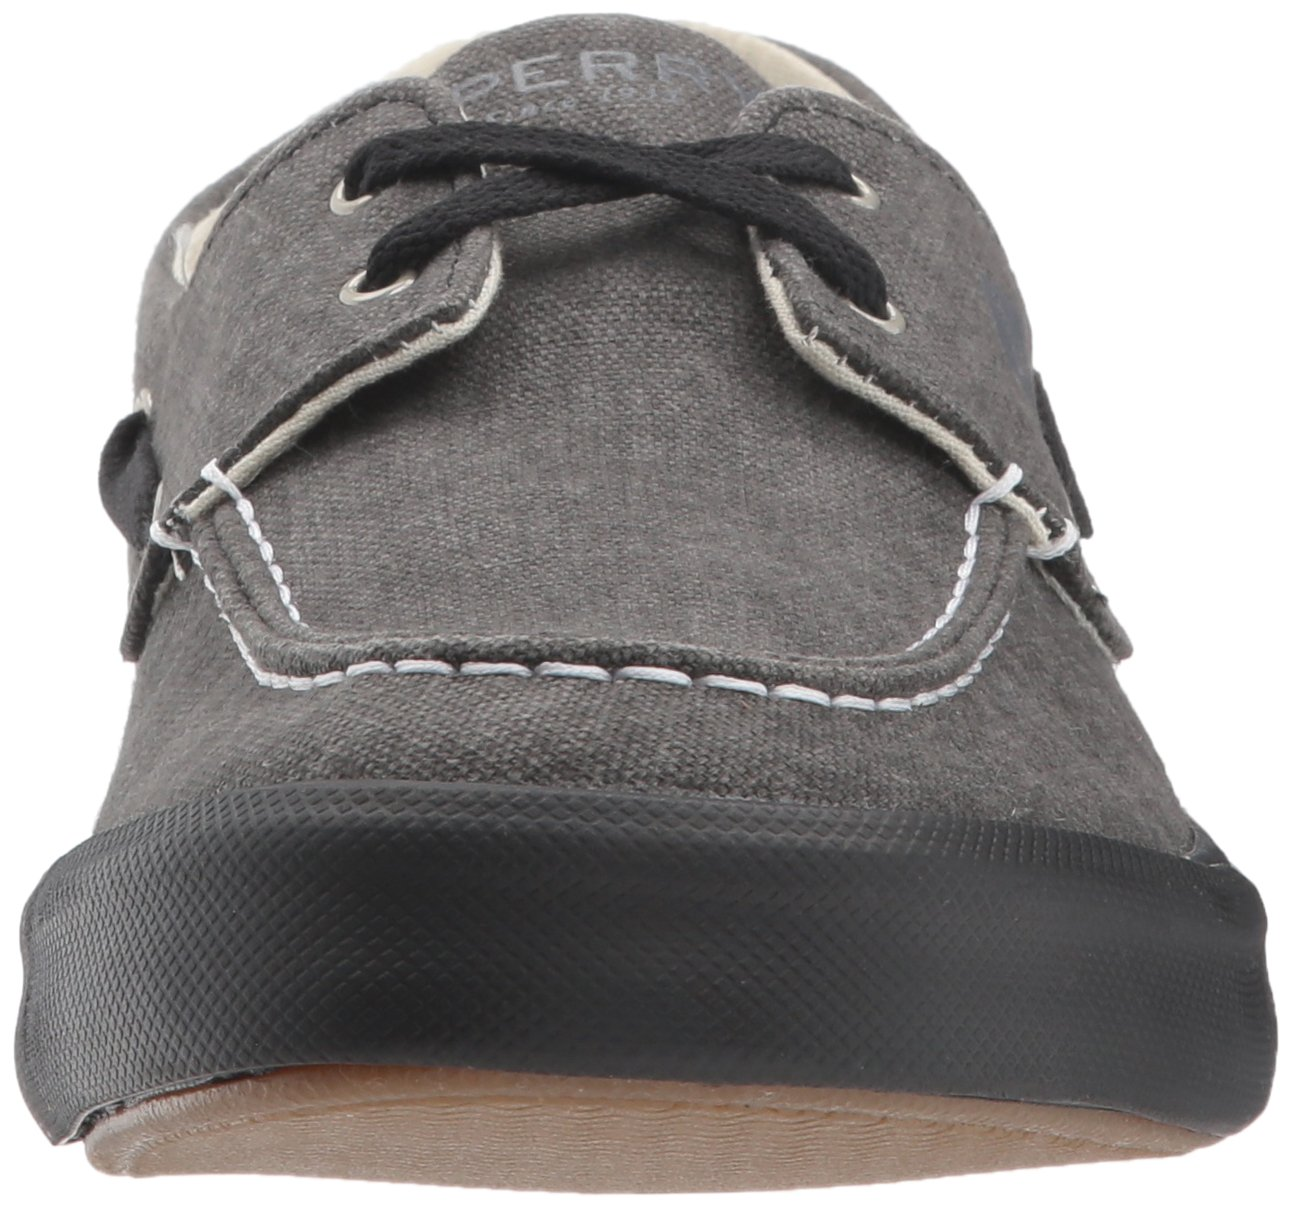 Sperry Top-Sider Bahama Noir II Boat 90) Washed Sperry Black, Chaussures  Bateau Homme Noir (Black 90) 05609dc c25c92dbc9dc